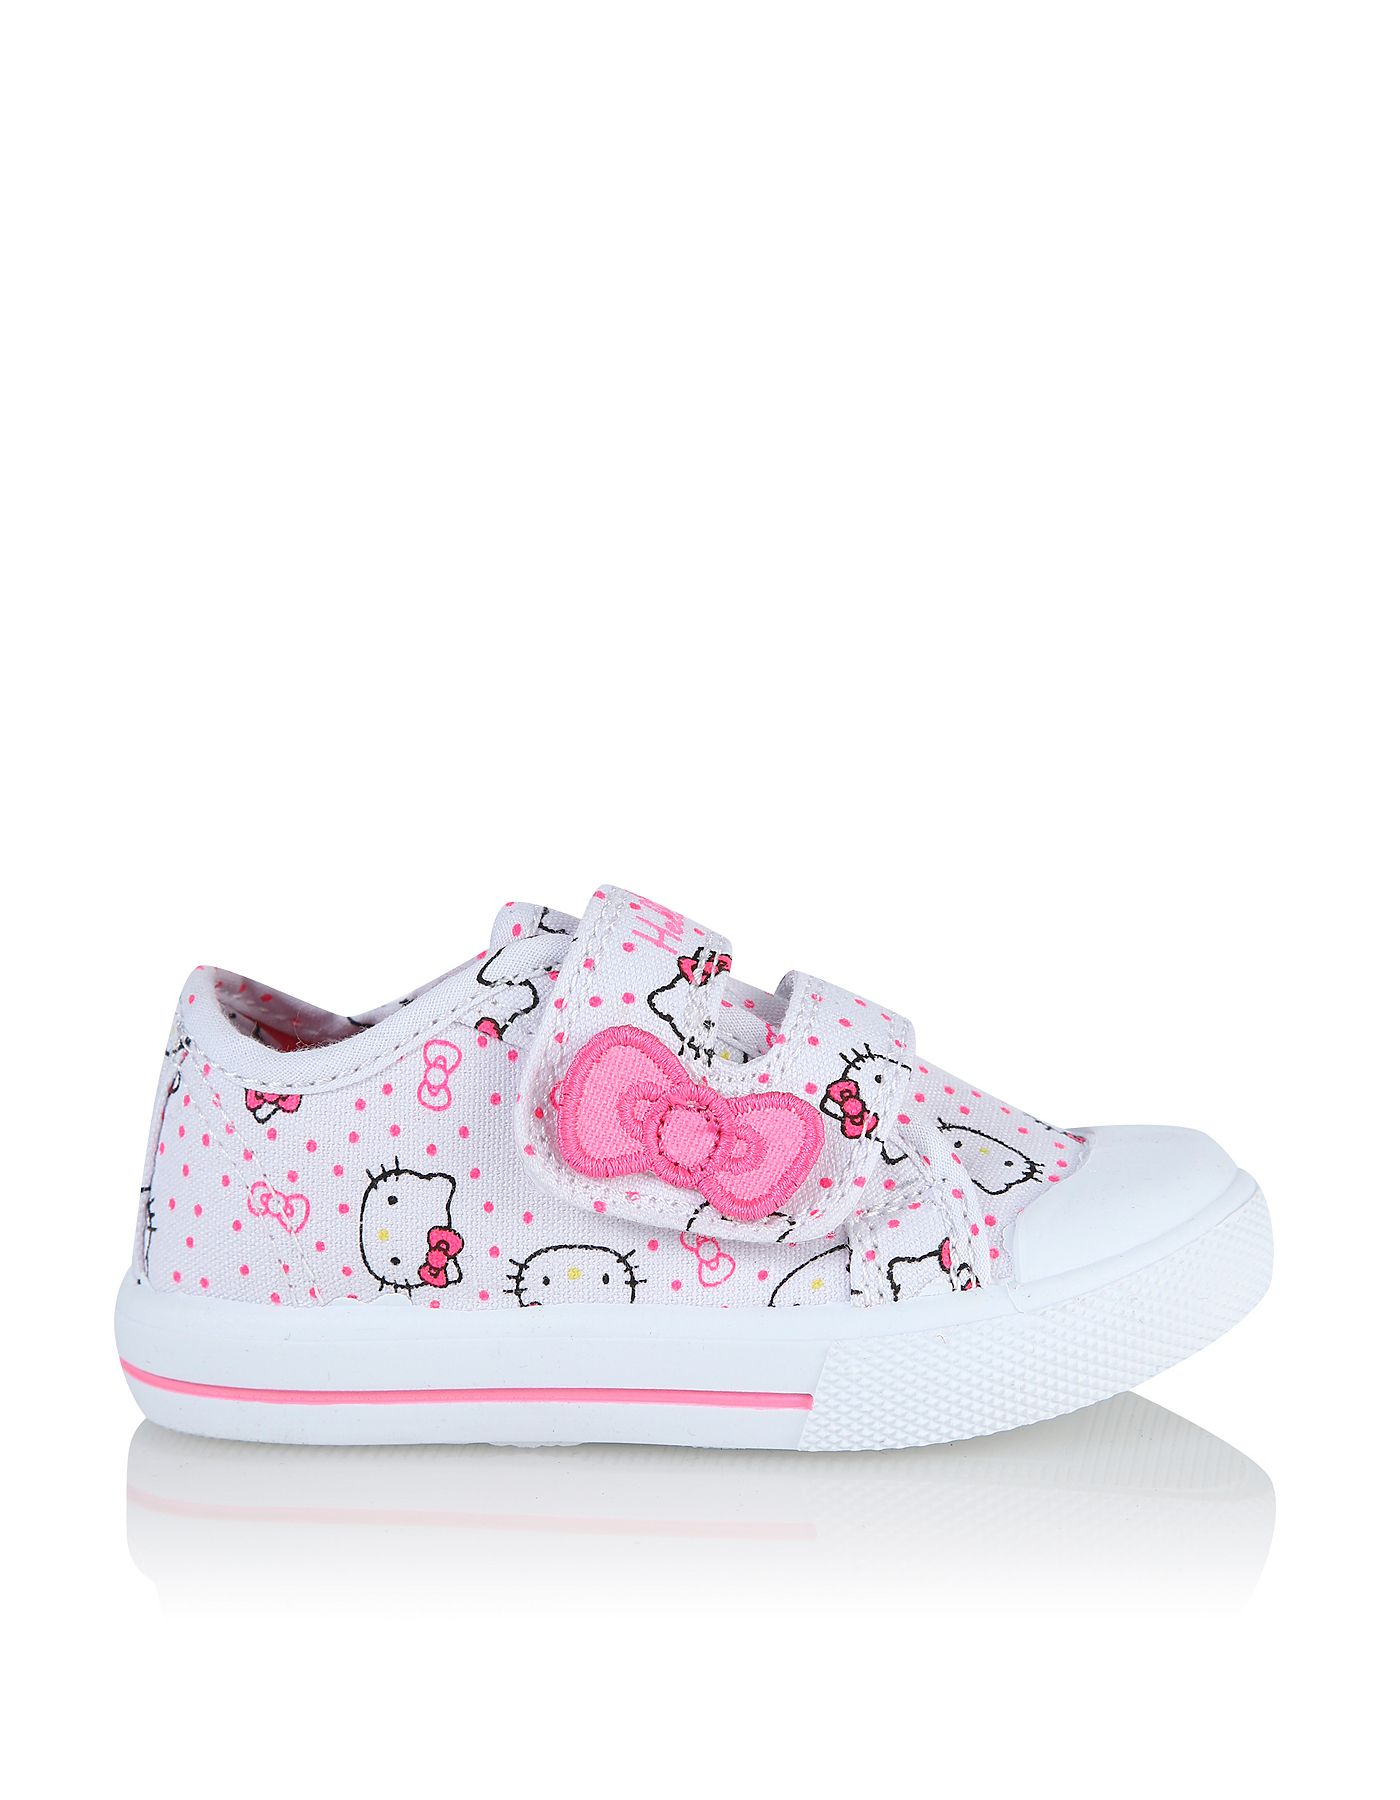 asda george girls trainers outlet 334f9